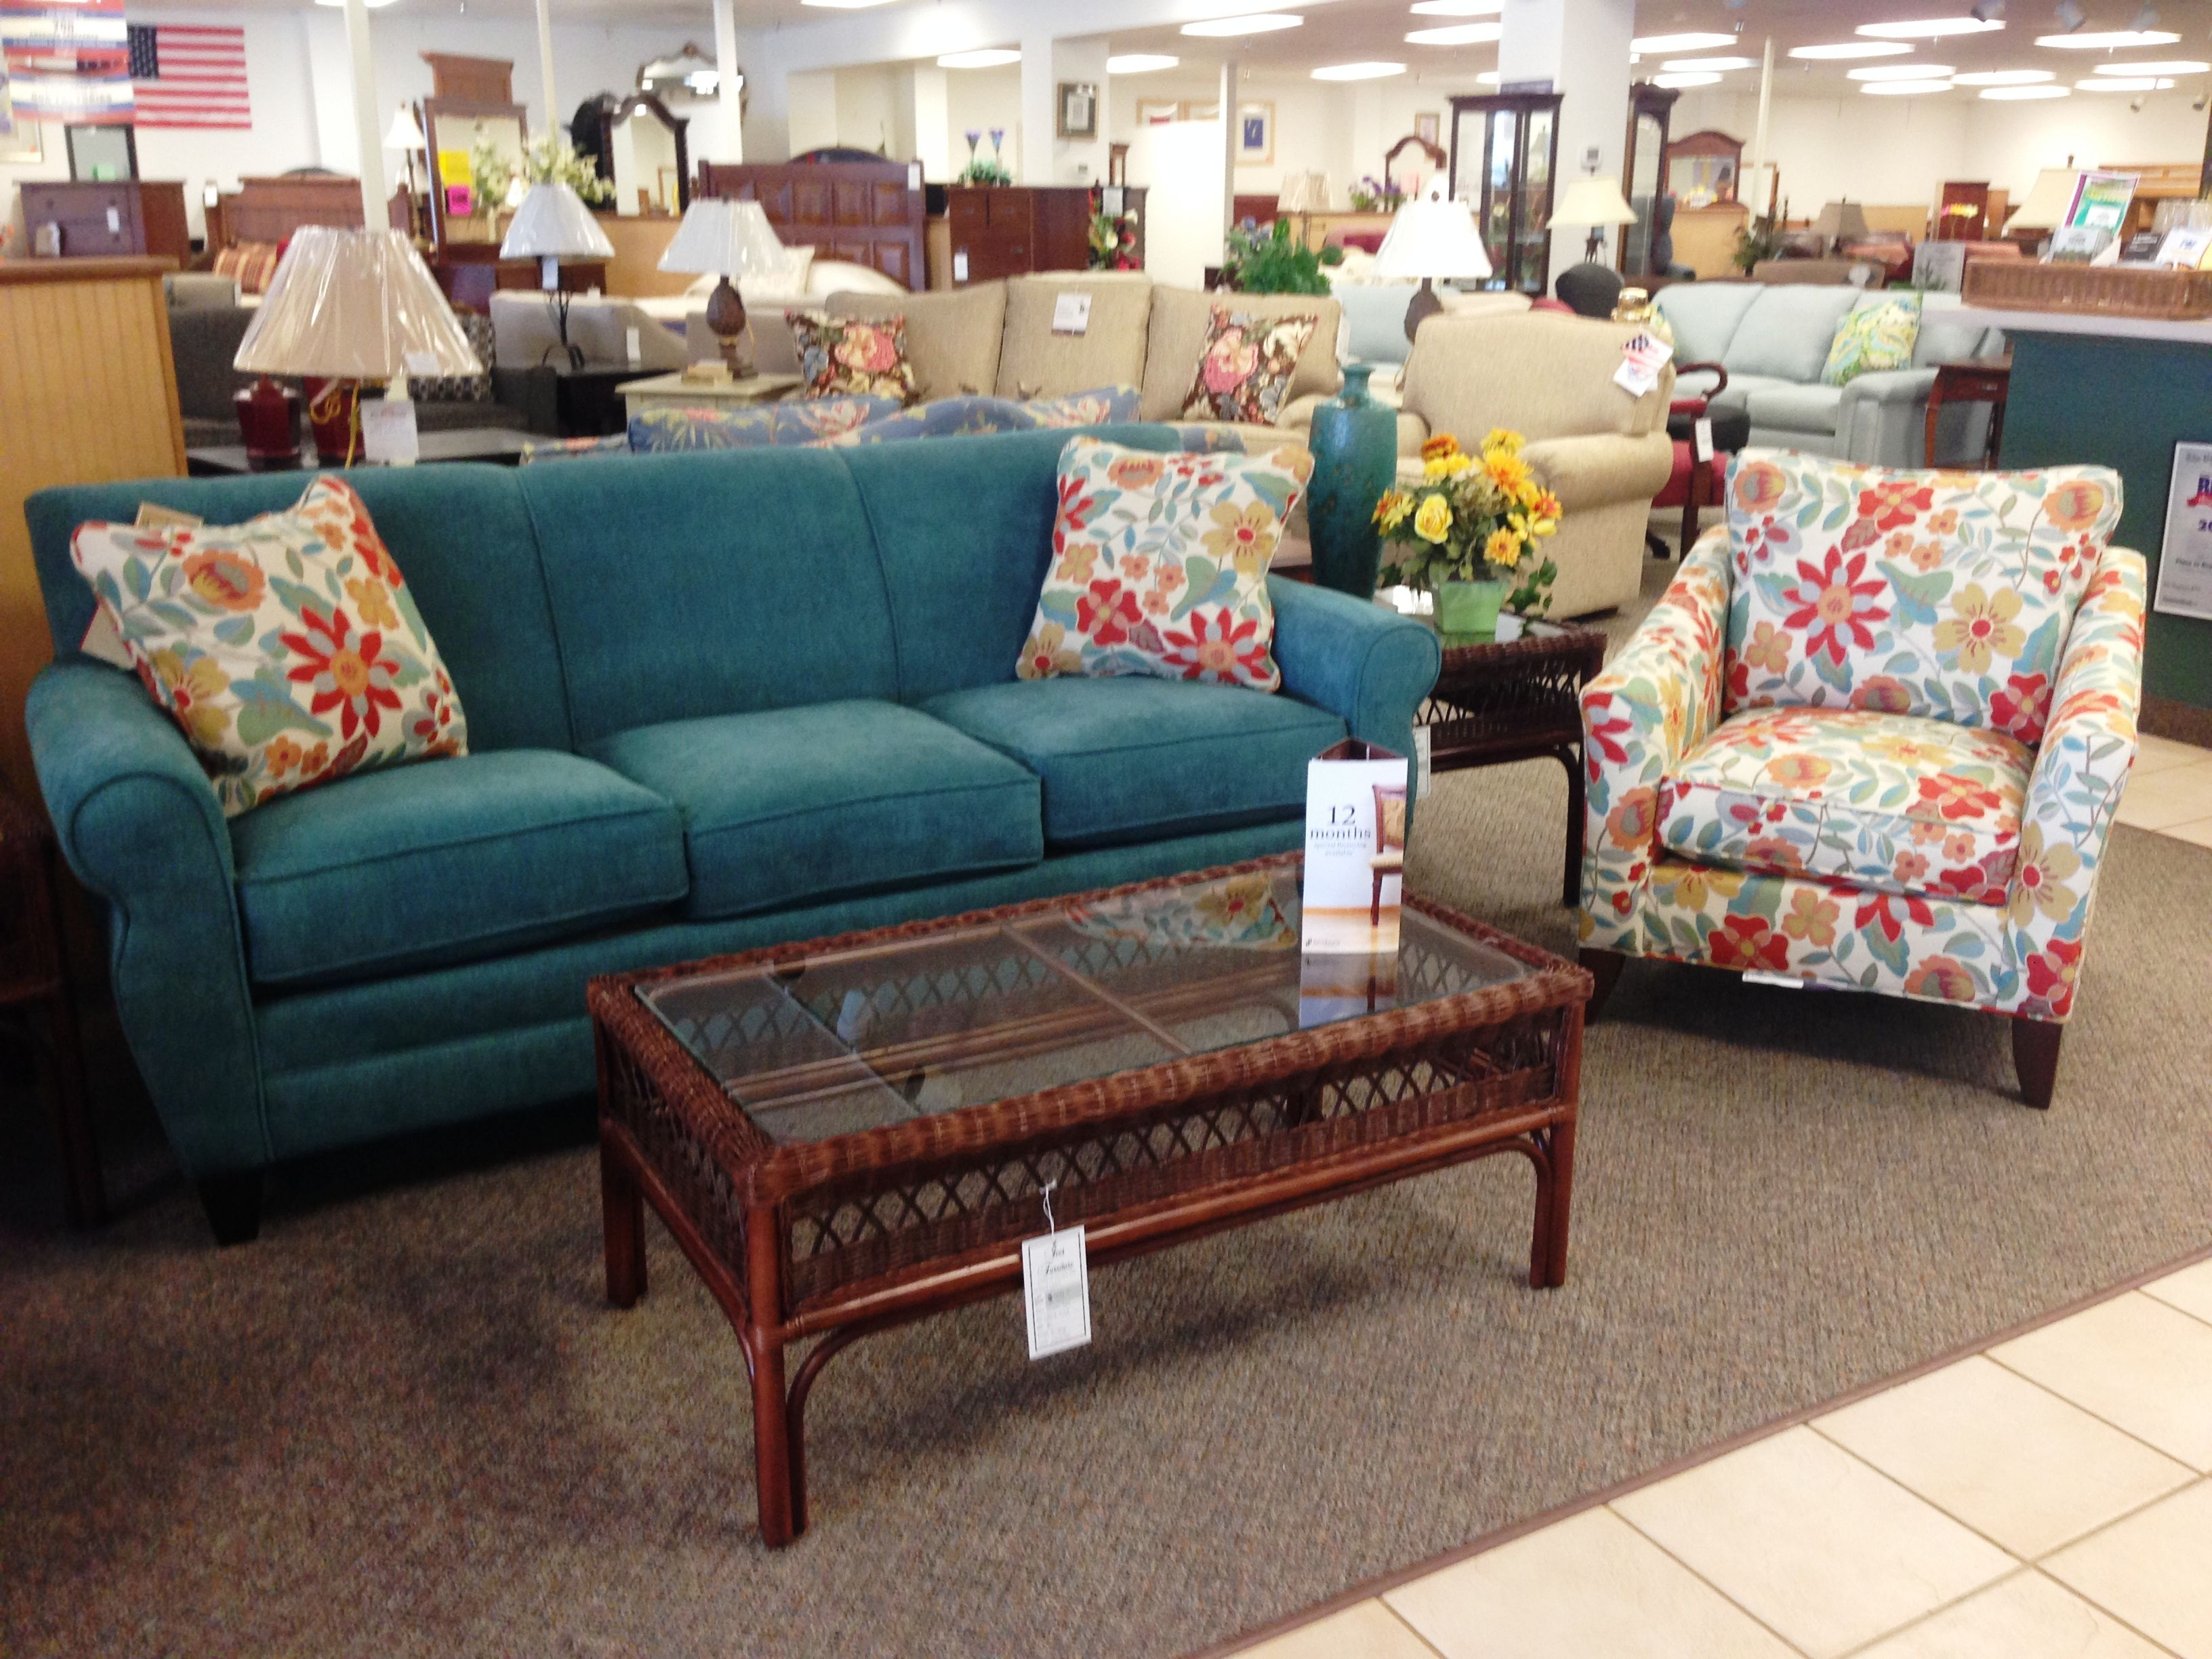 Upholstery | Furniture | Gallery | Ivor Furniture Company | Furniture    Appliances   Bedding